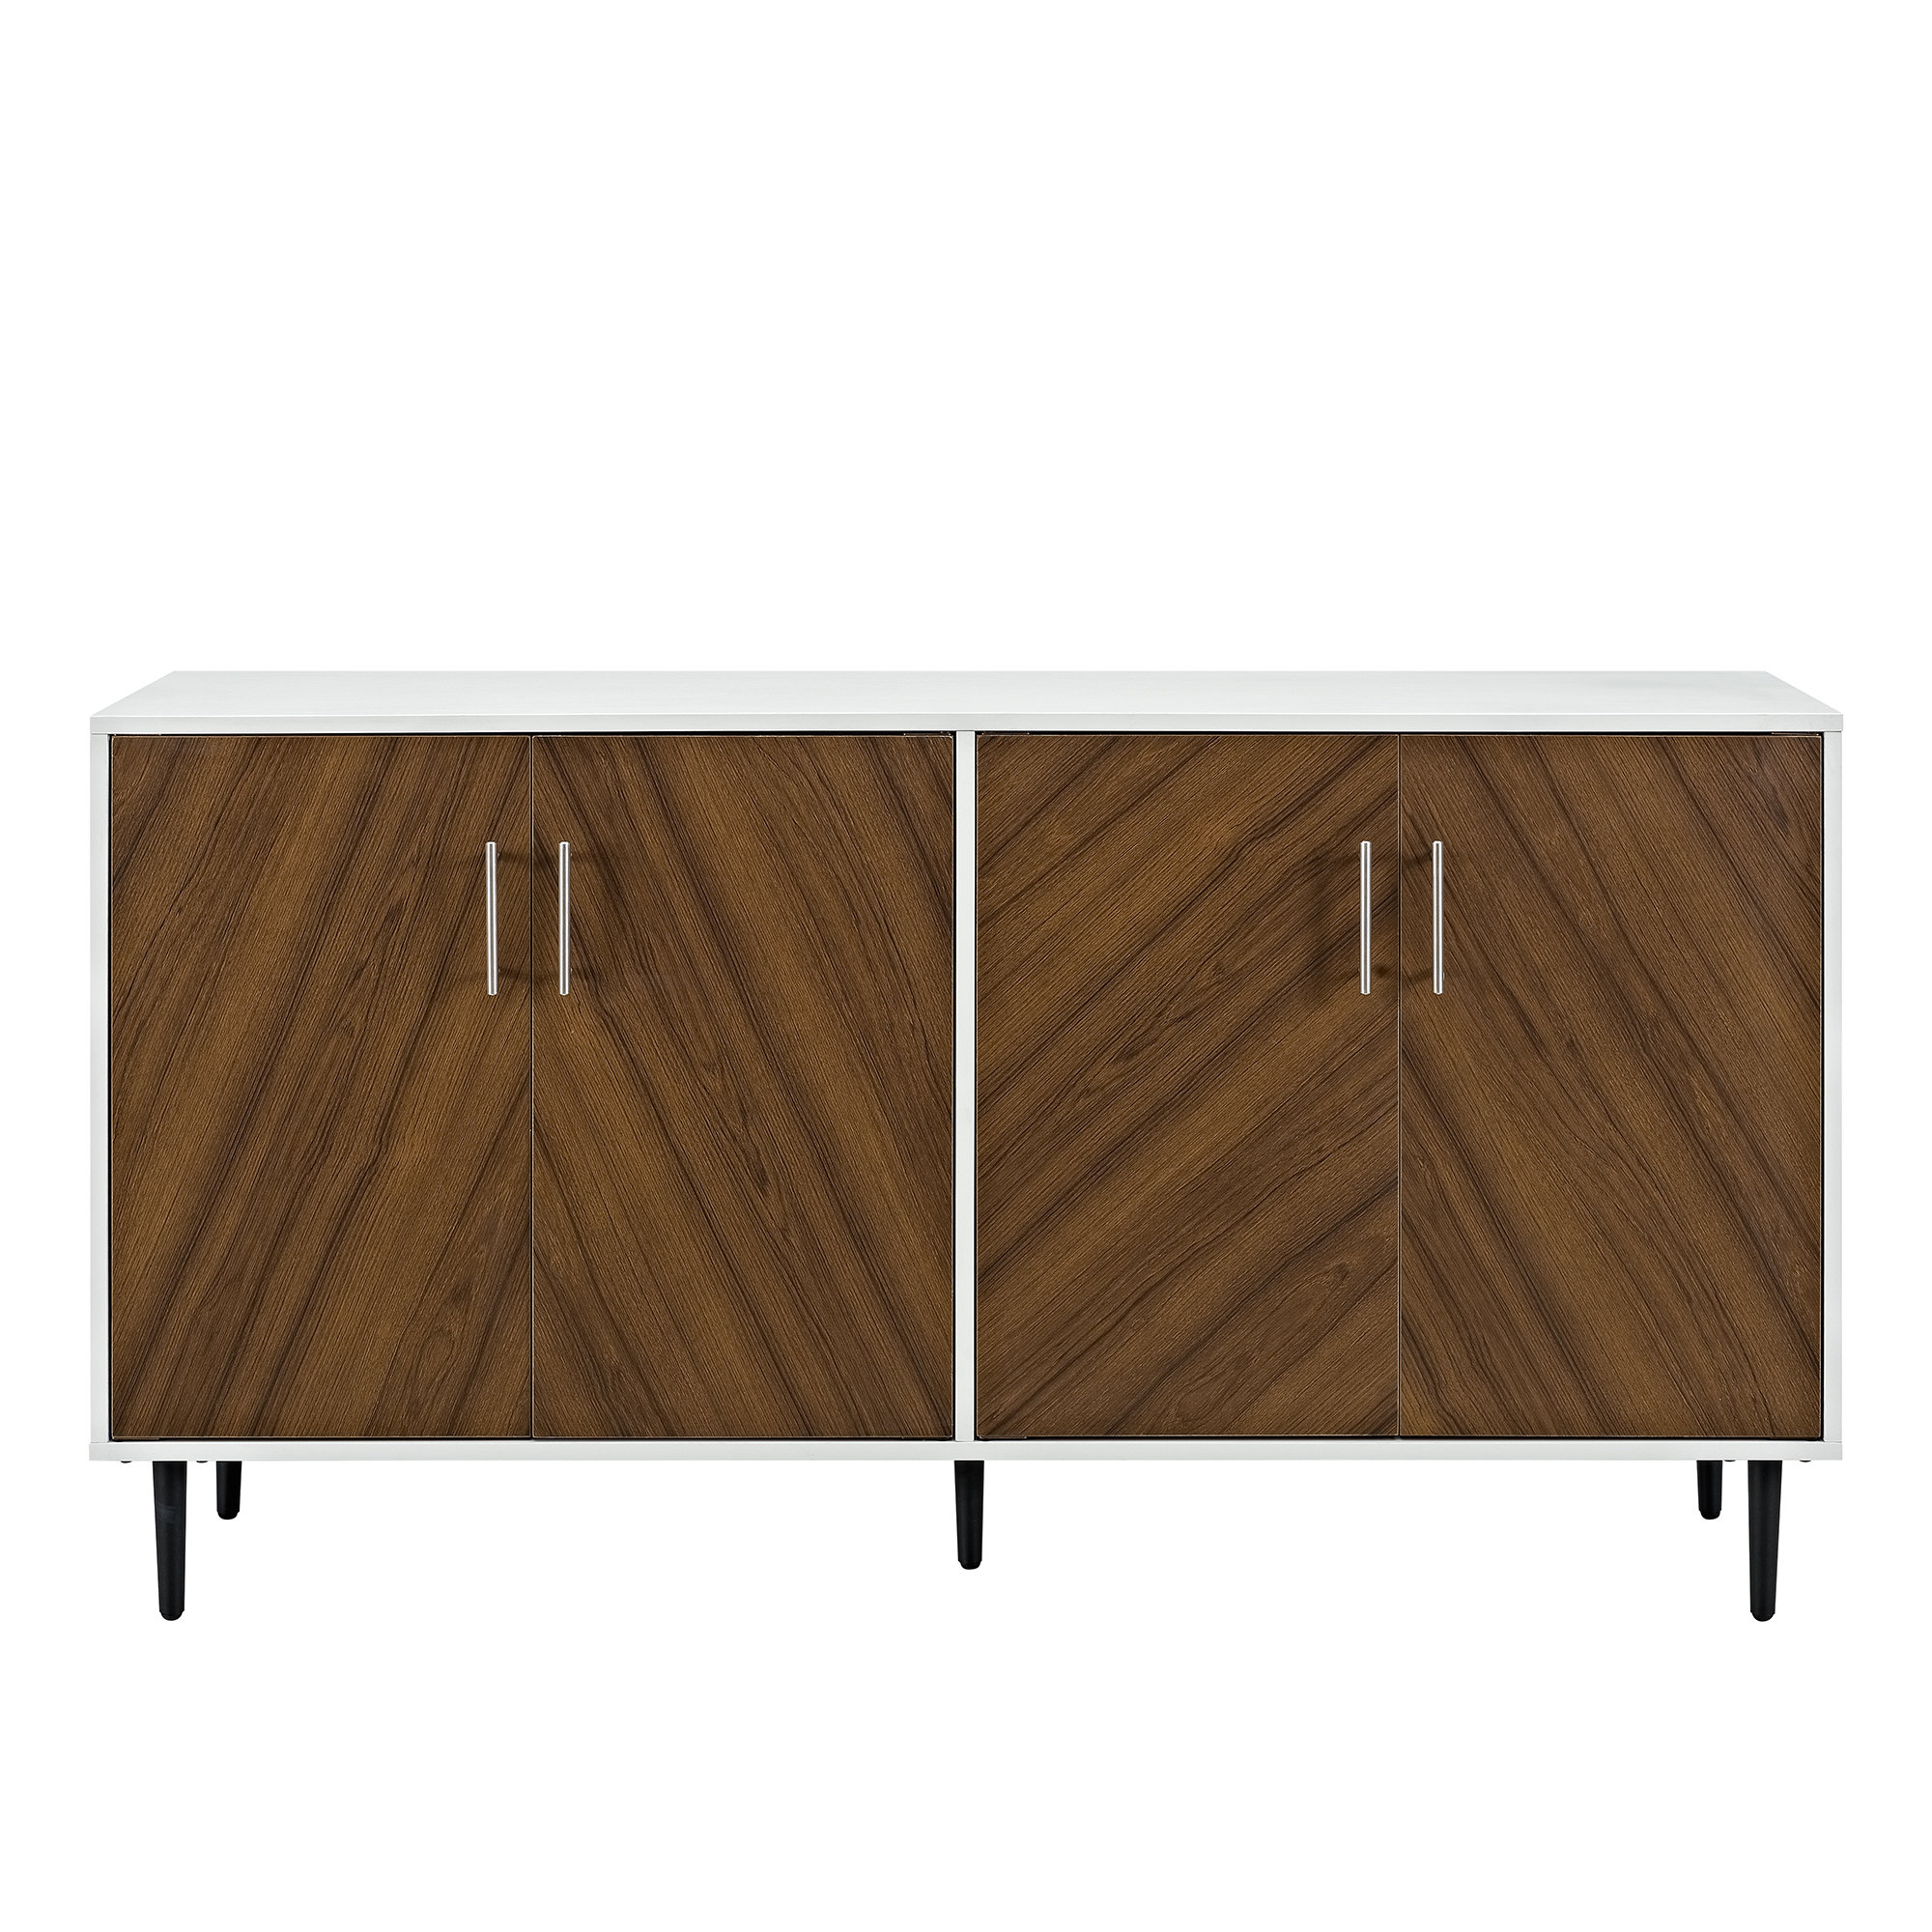 Keiko Modern Bookmatch Sideboard Intended For Keiko Modern Bookmatch Sideboards (Photo 1 of 30)